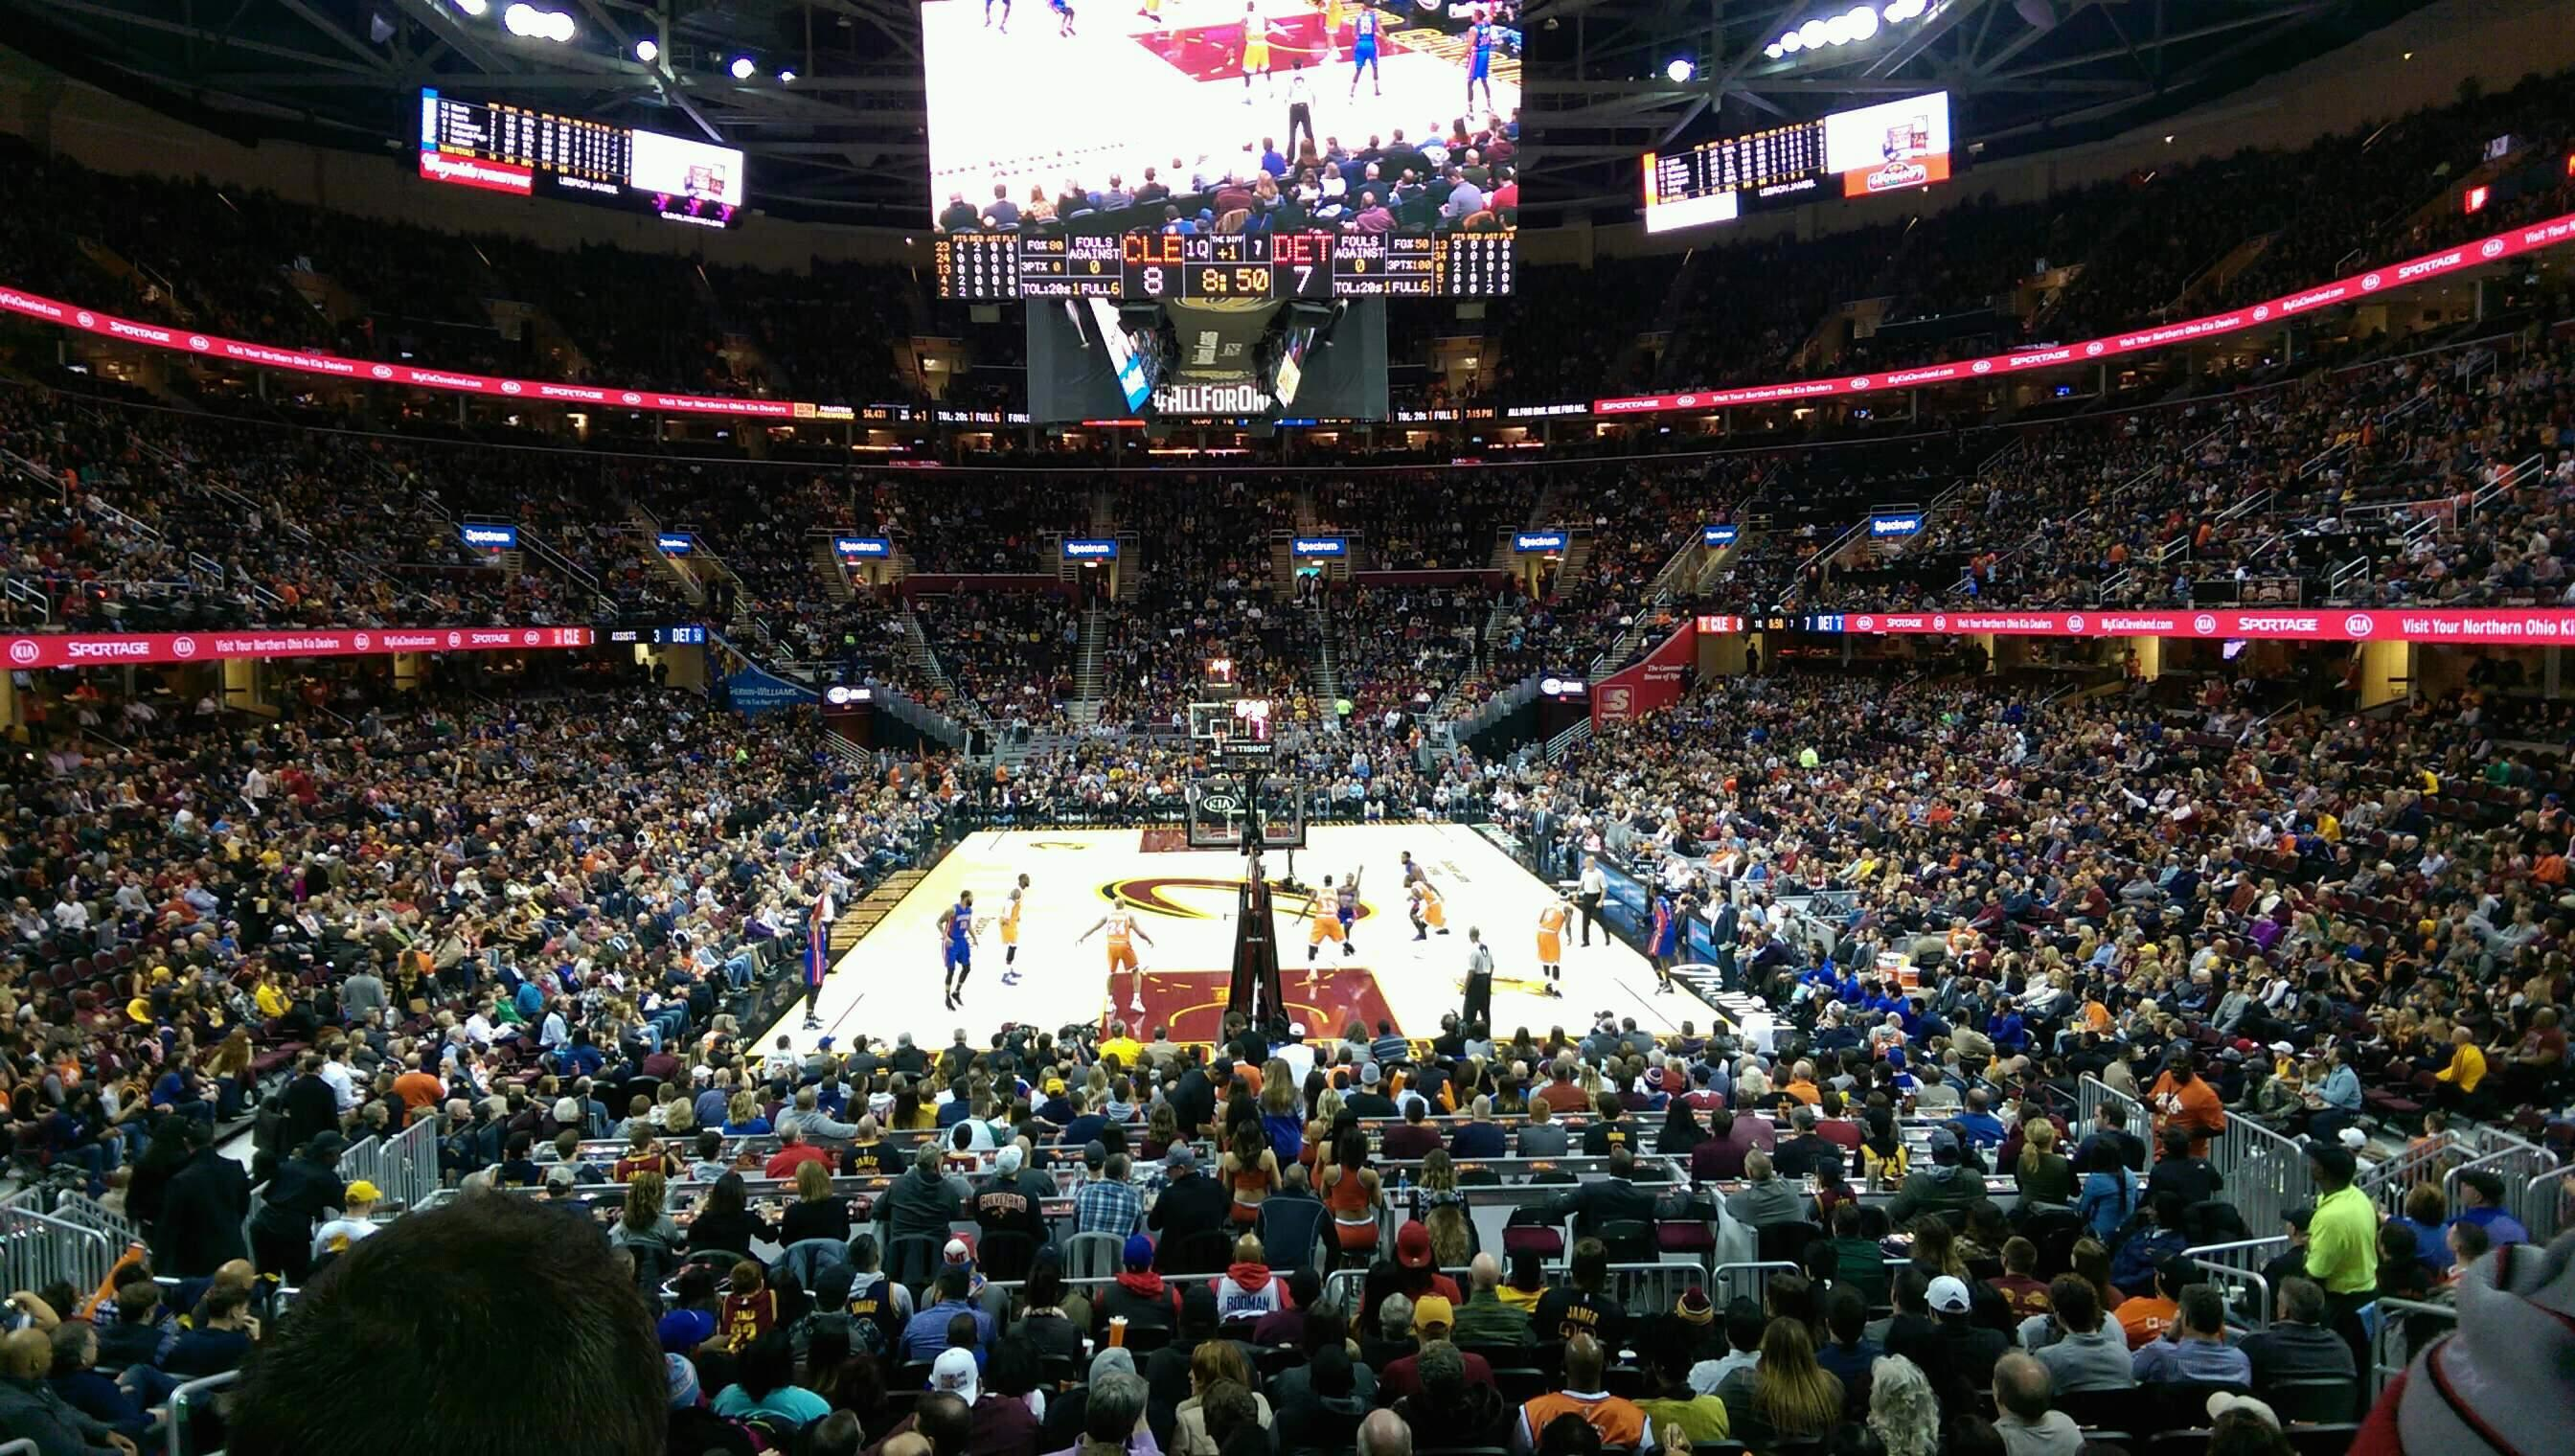 Quicken Loans Arena Section 117 Row 14 Seat 8